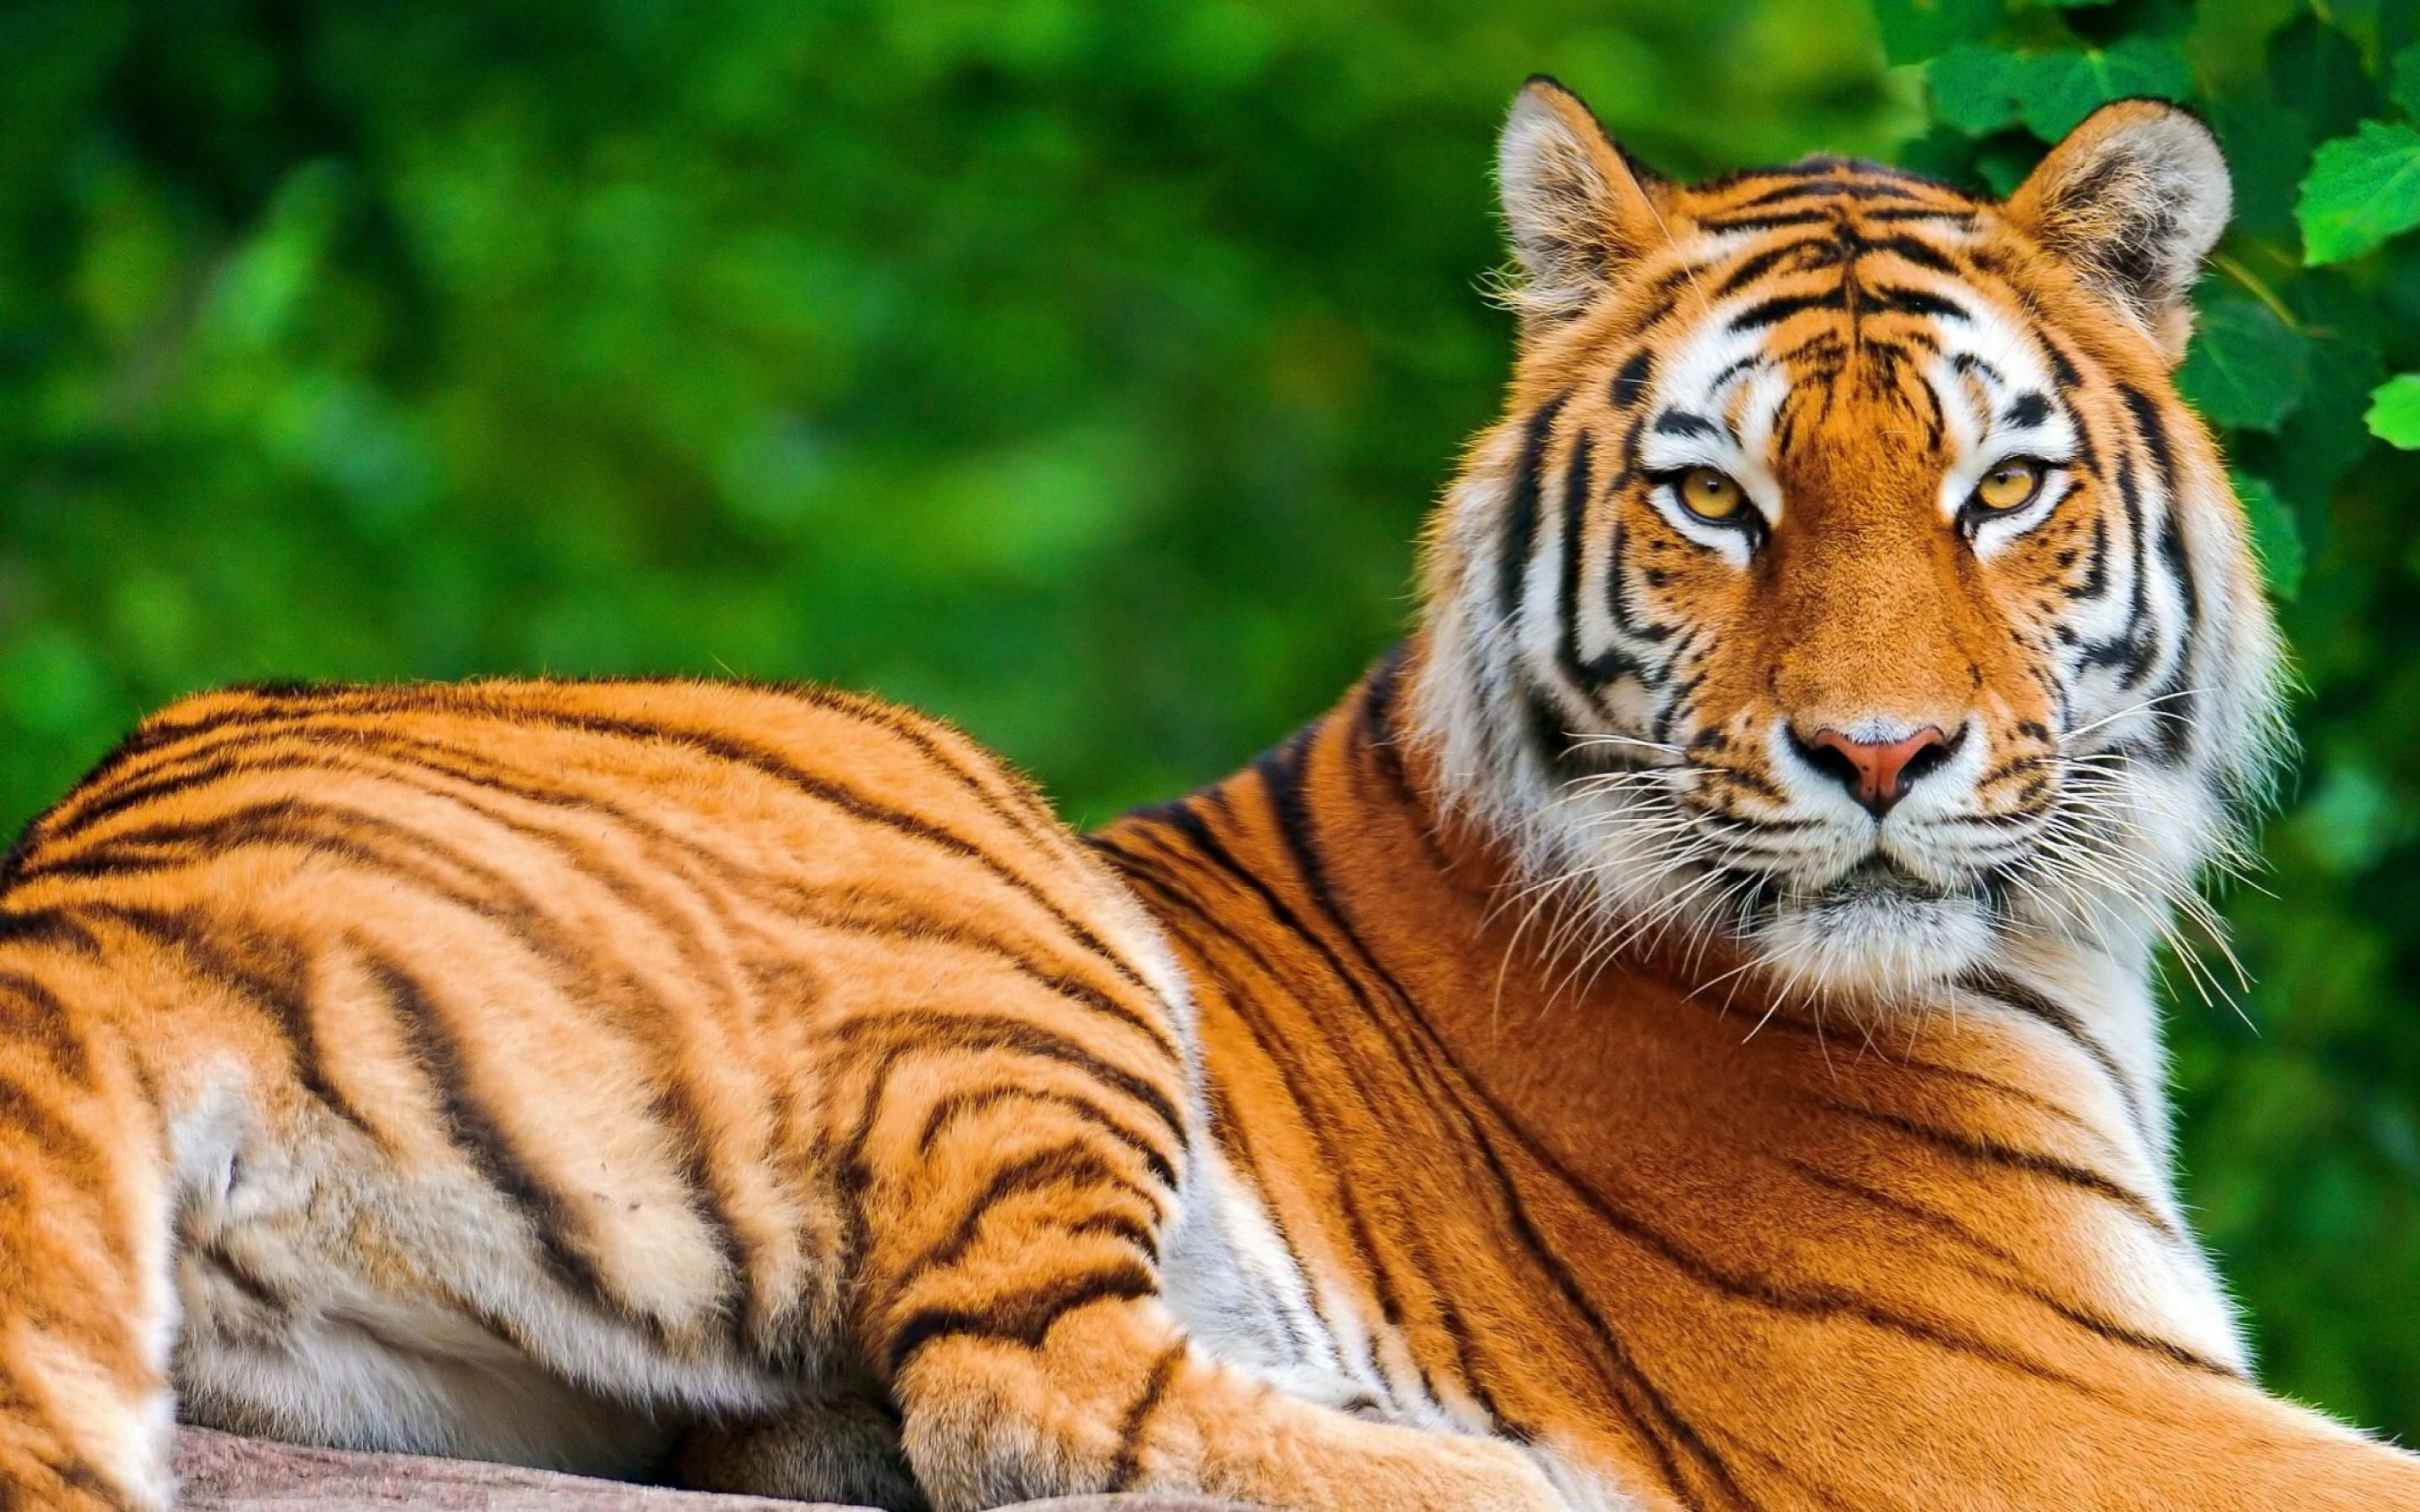 Hd Tiger Backgrounds 75 Images